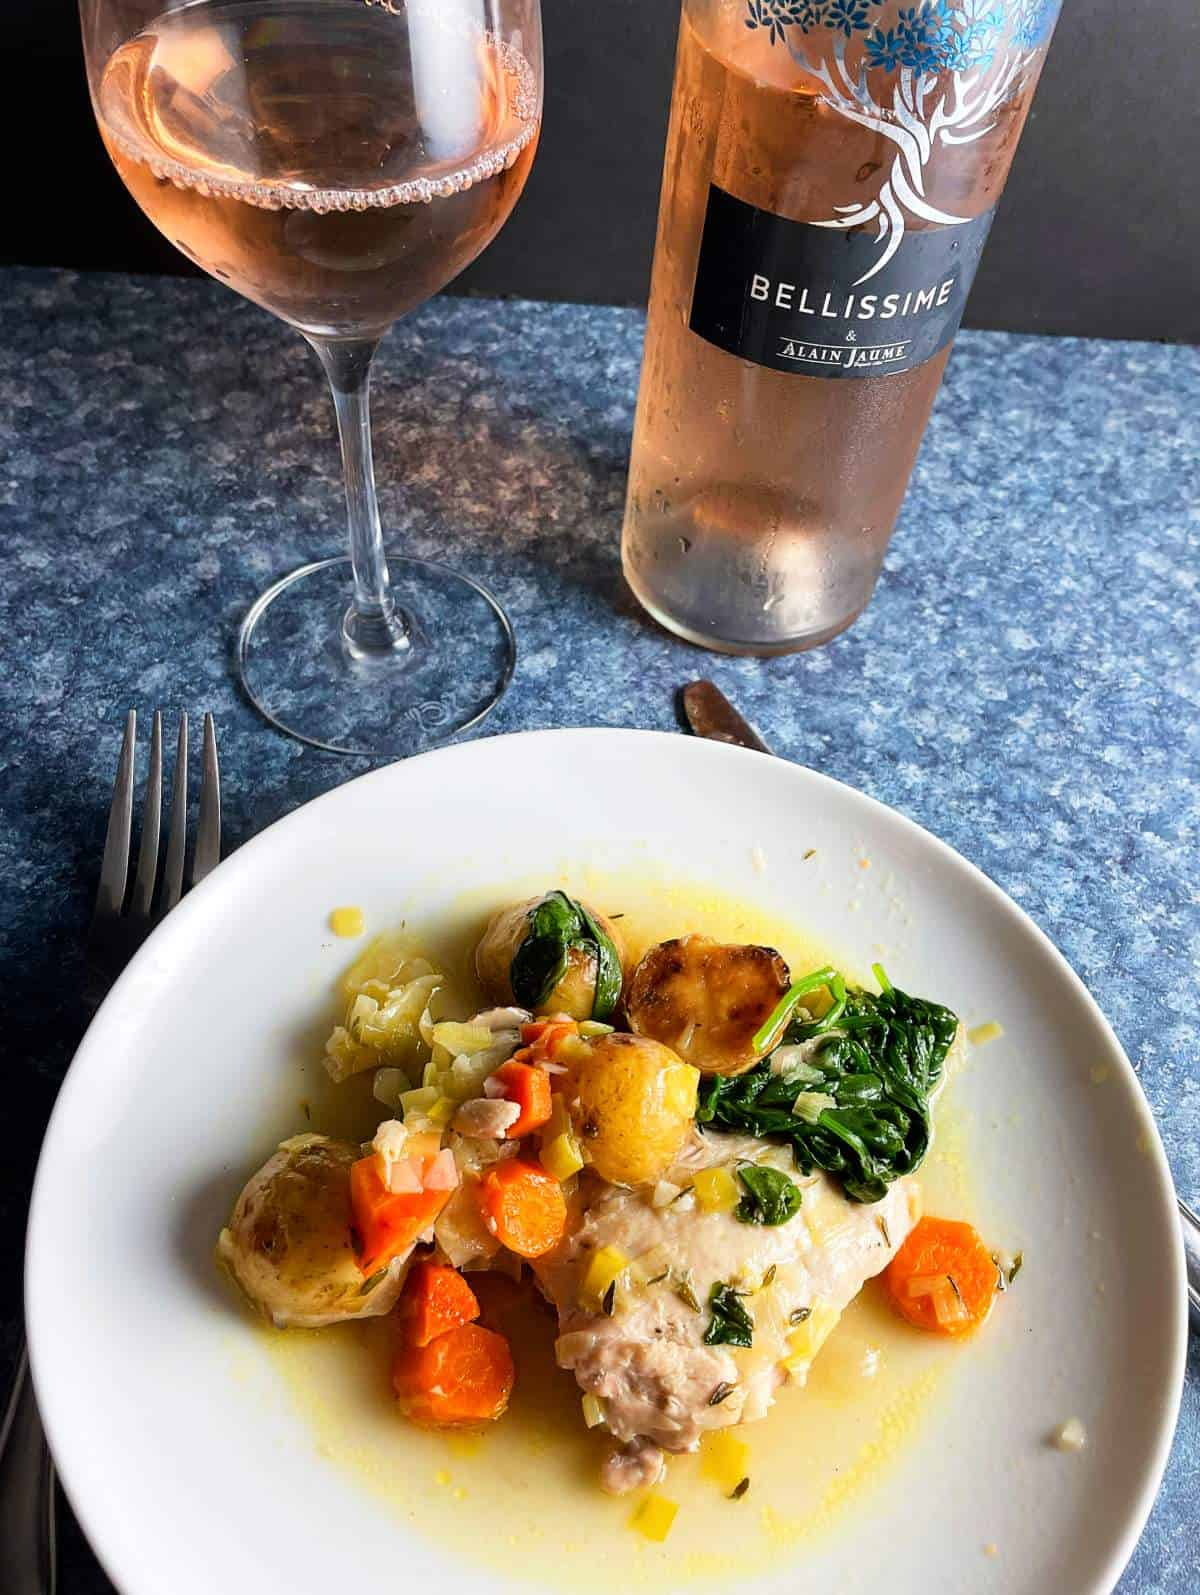 braised chicken thighs served with carrots, spinach and potatoes. A rosé wine is in the background.